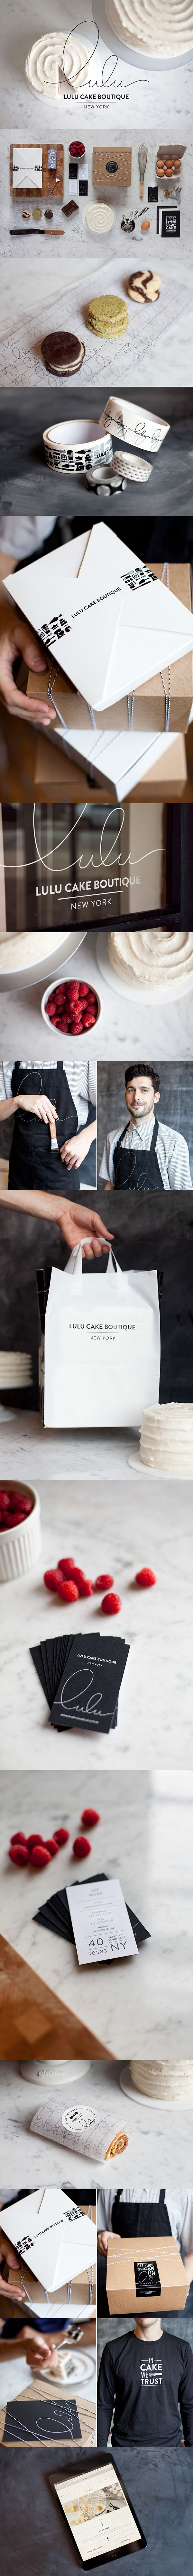 Lulu Cake Boutique